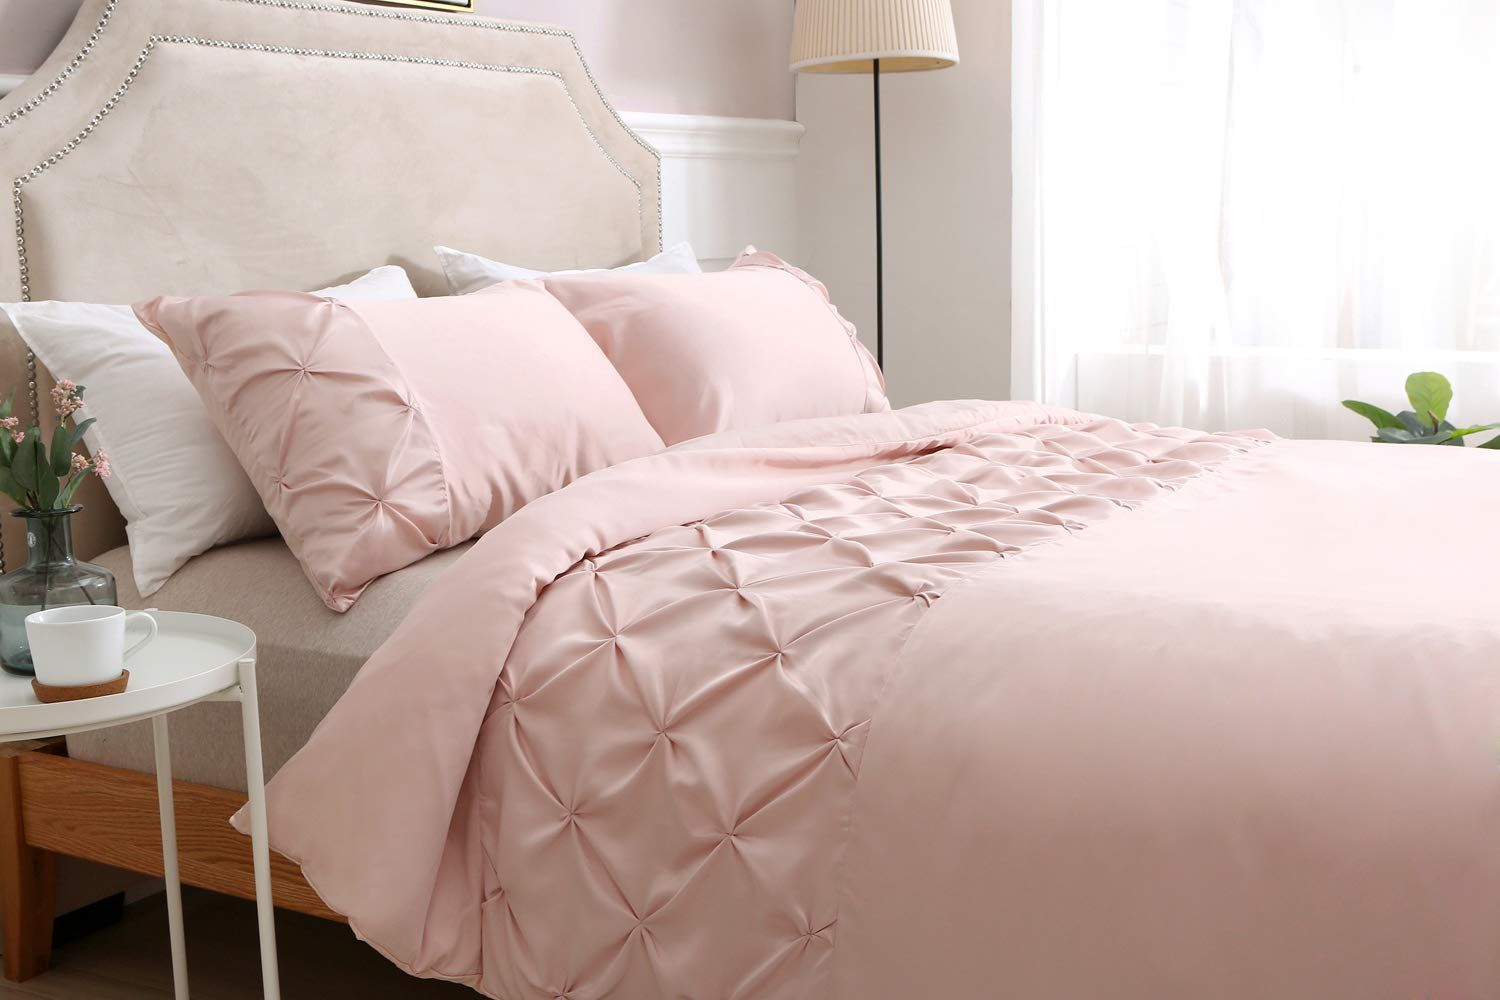 Finished In A Subtly Elegant Shade Of Blush Grey Cream And